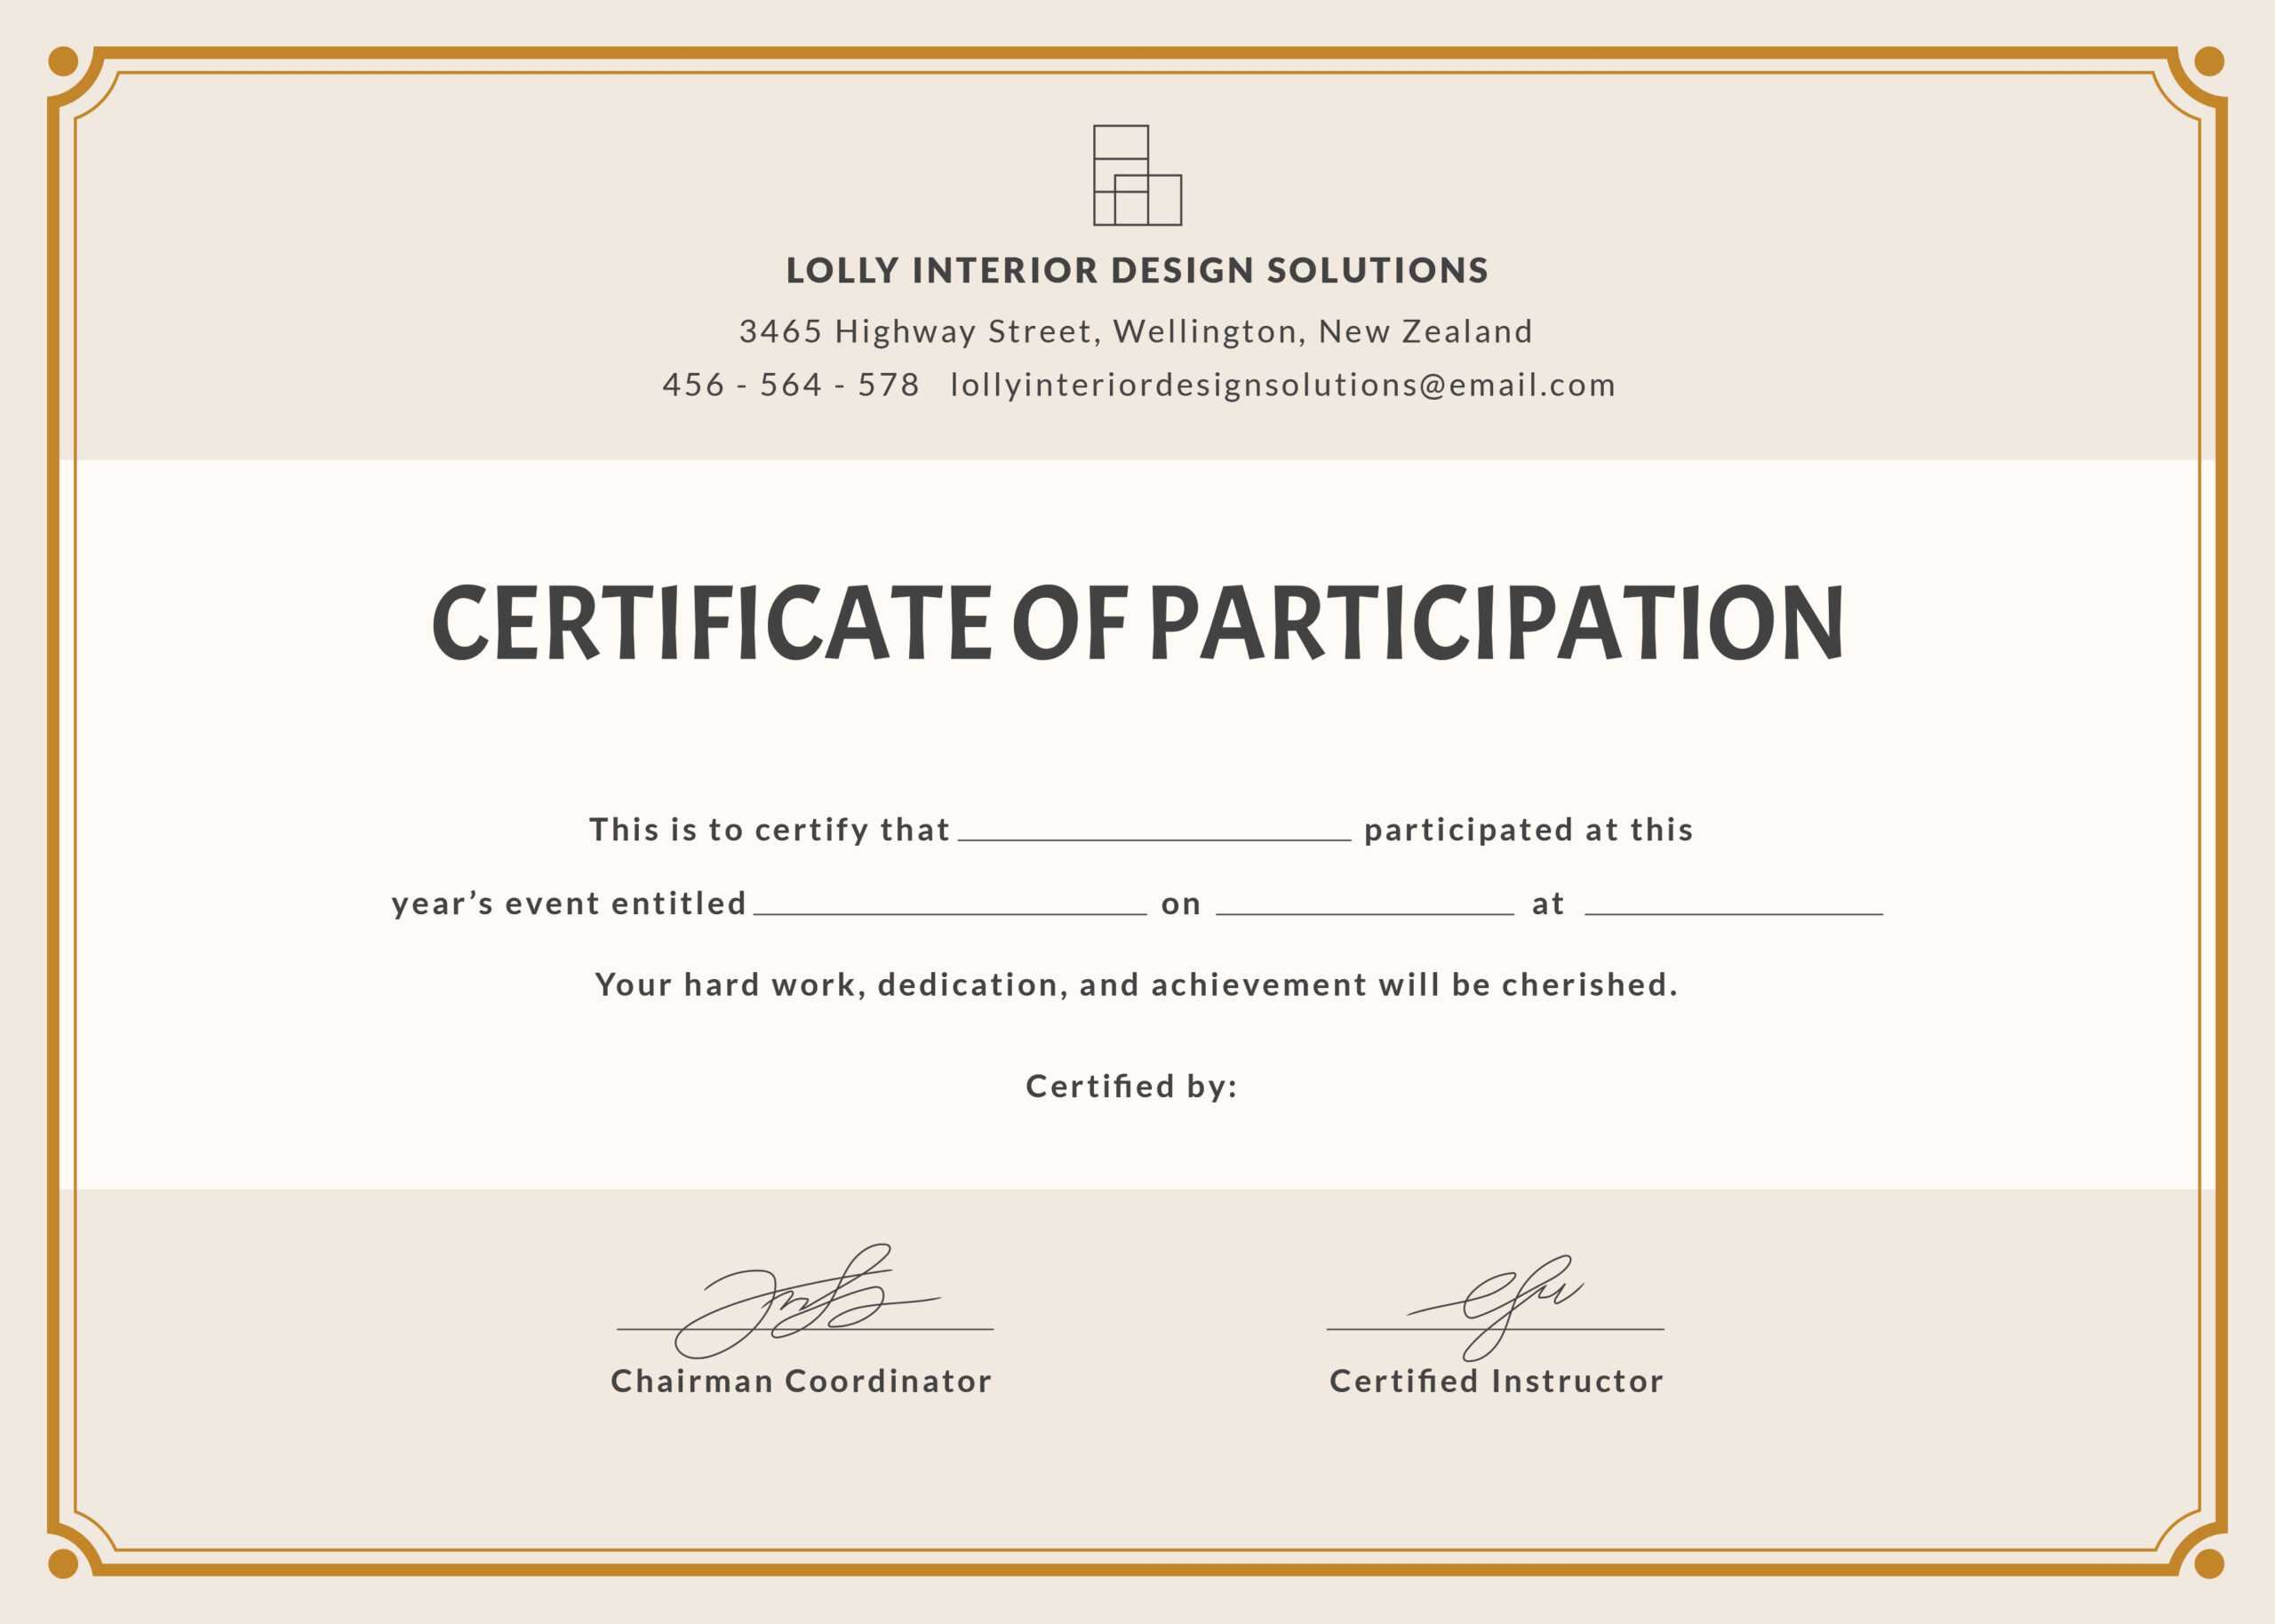 2019 Buildings Xiv International Conference Attendance in Conference Certificate Of Attendance Template